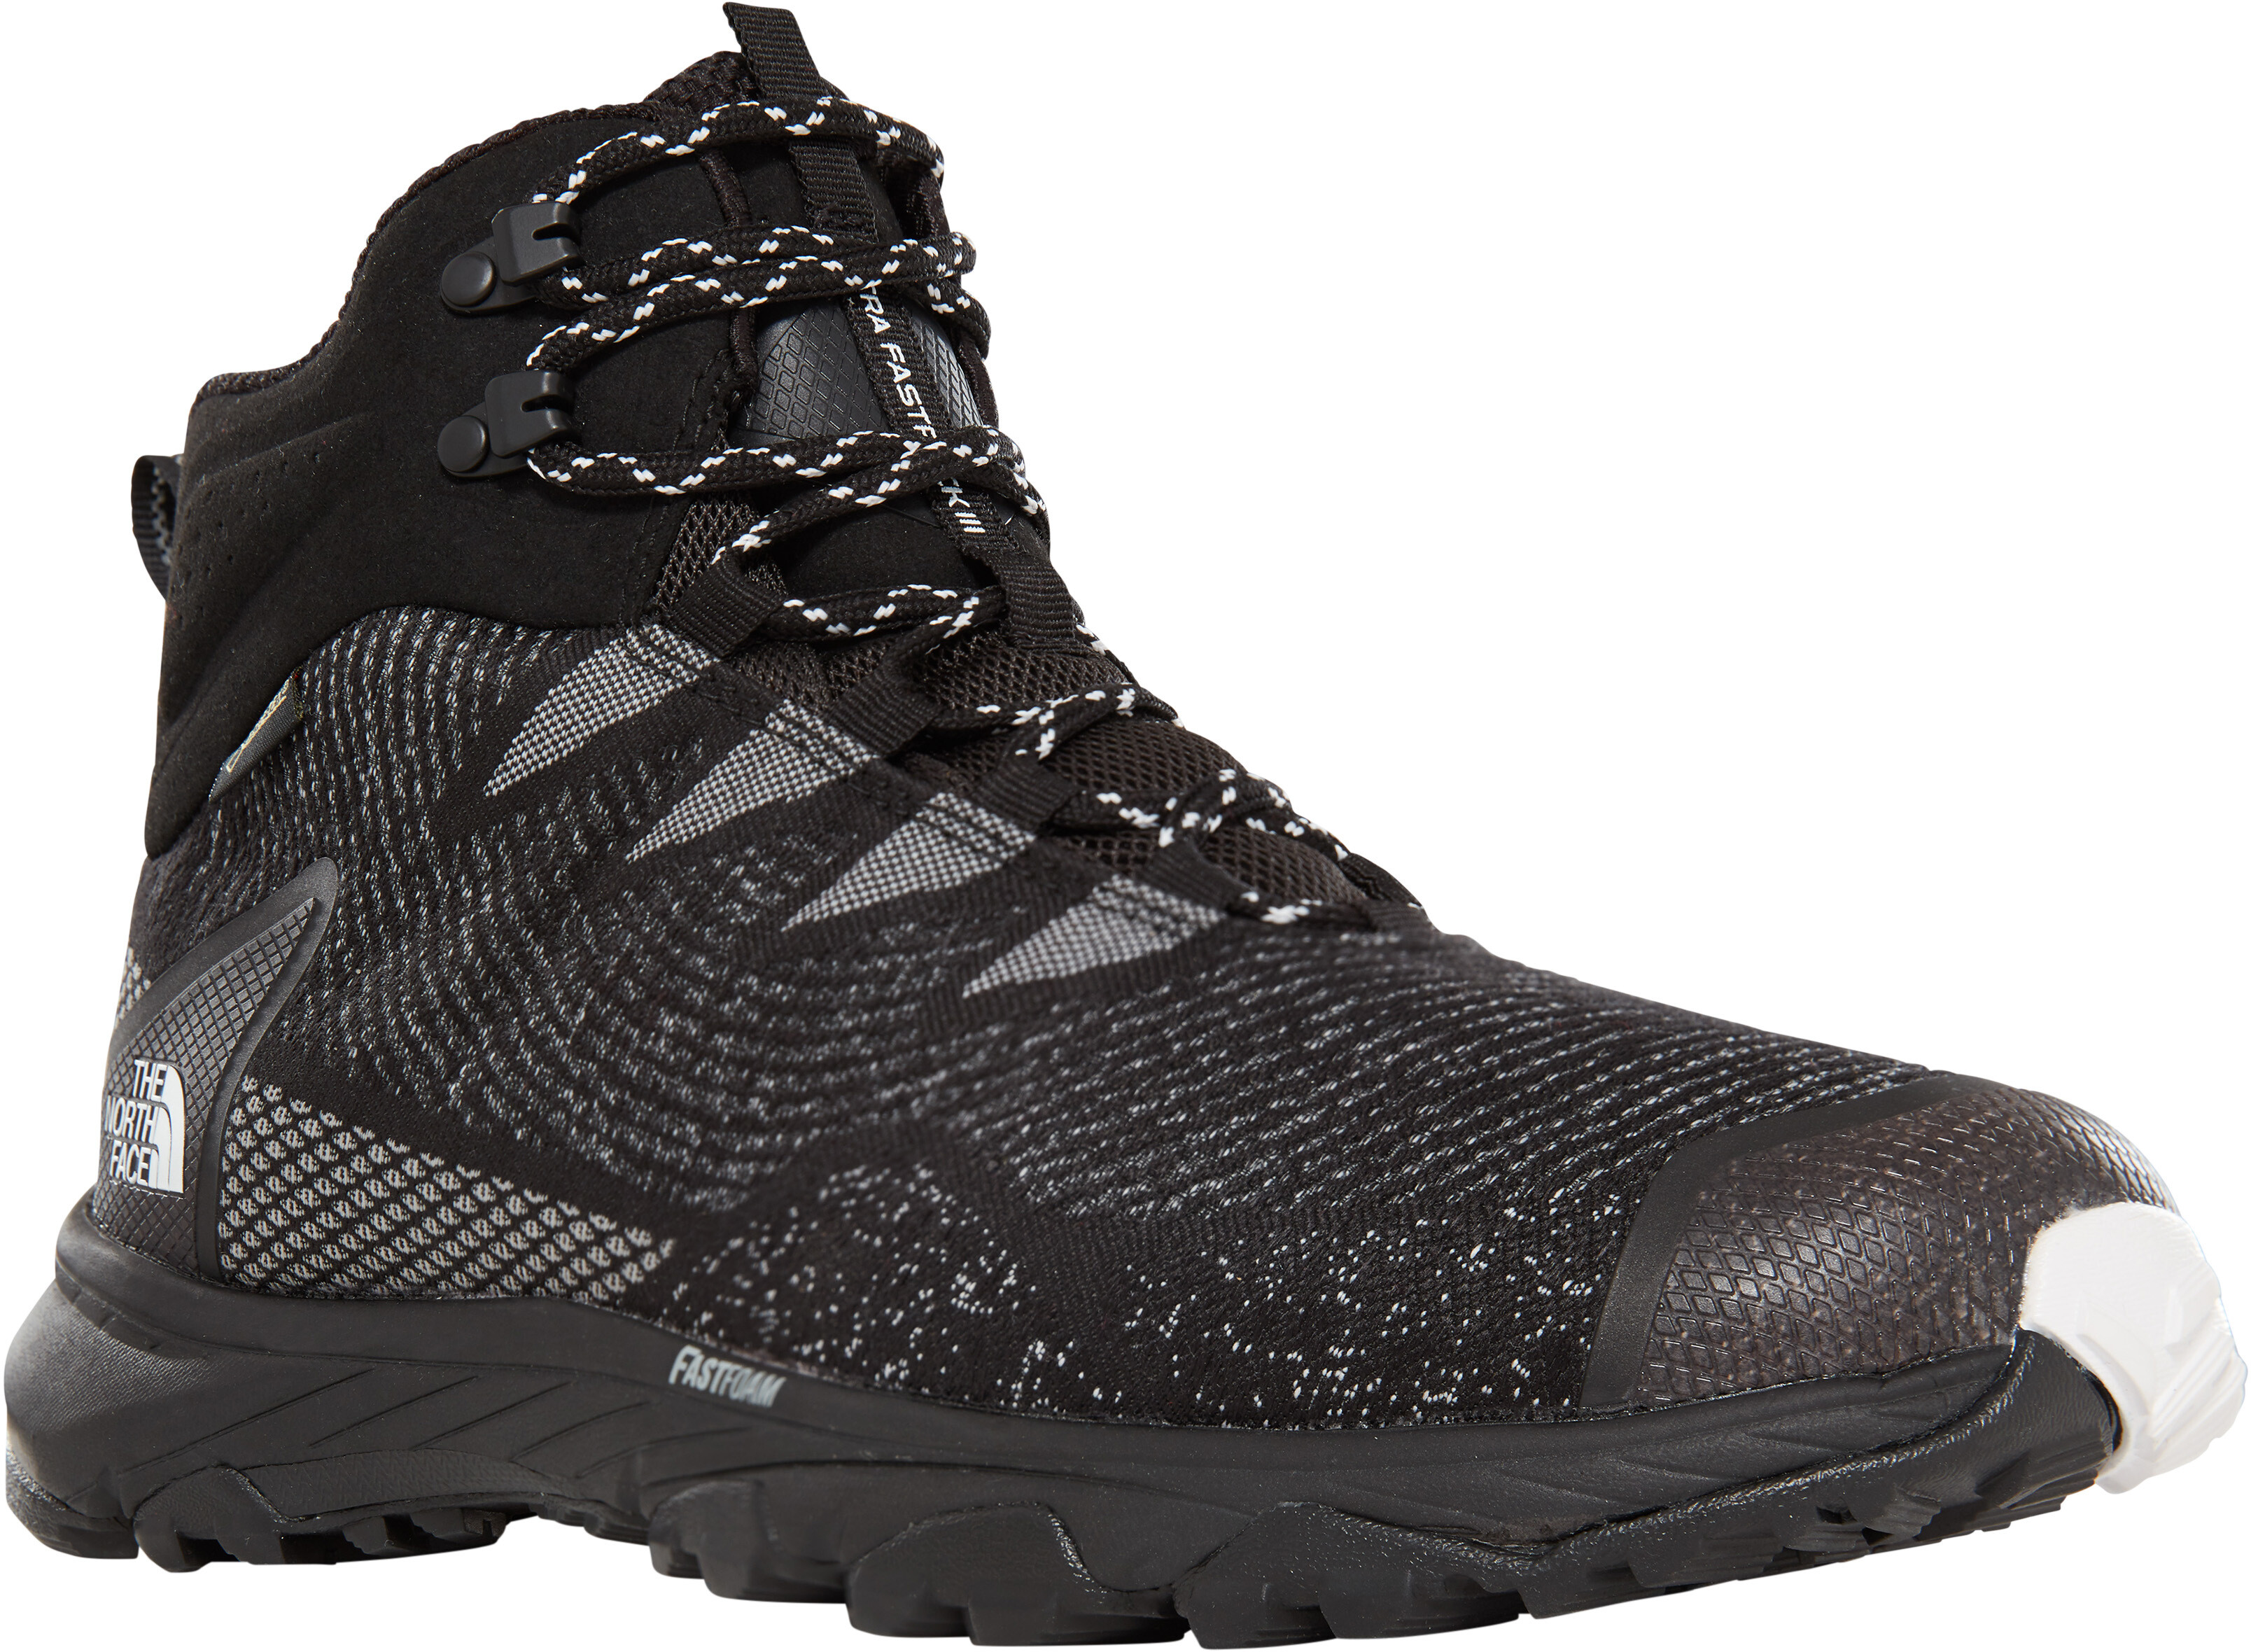 a3fcfcc393 The North Face Ultra Fastpack III Mid GTX Woven Shoes Men tnf black/tnf  white